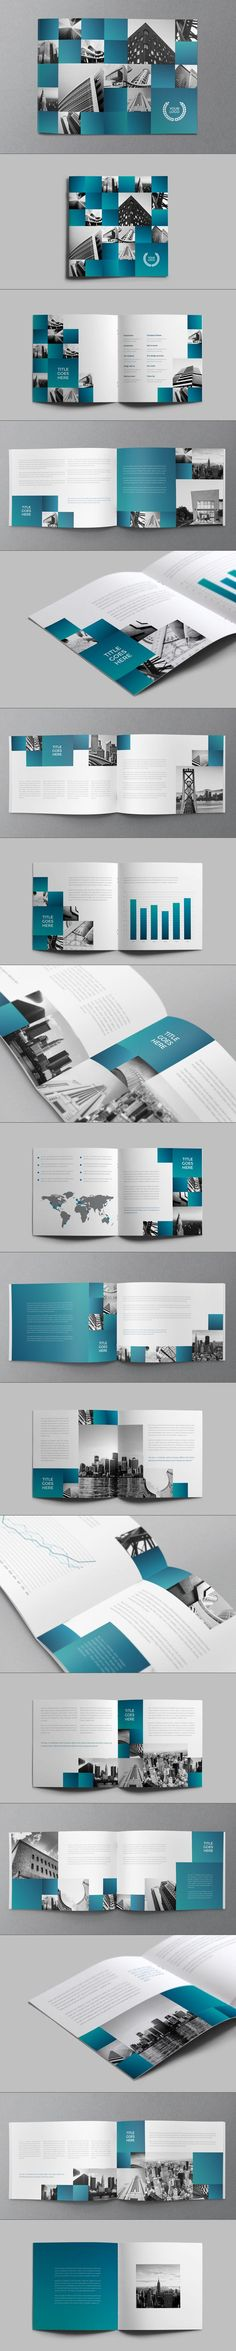 Architect Brochure Designs For Your Inspiration